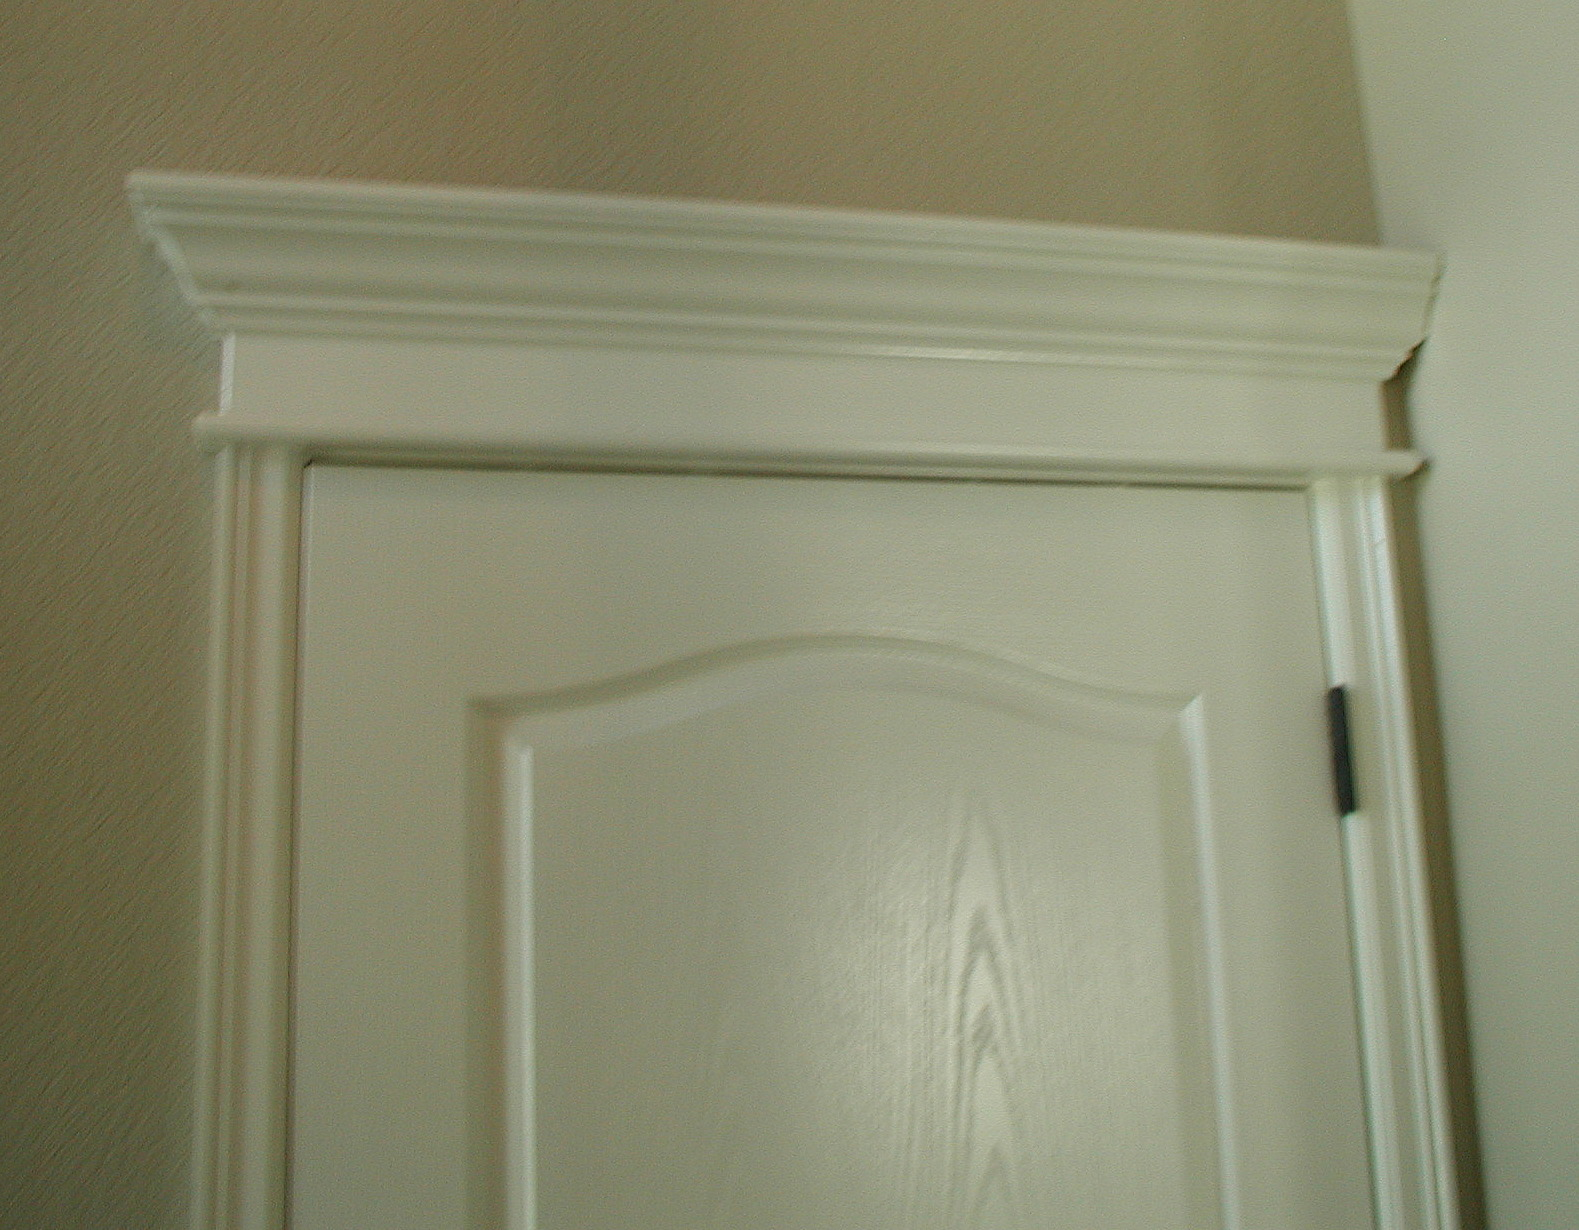 How to Install Molding Around a Doorway